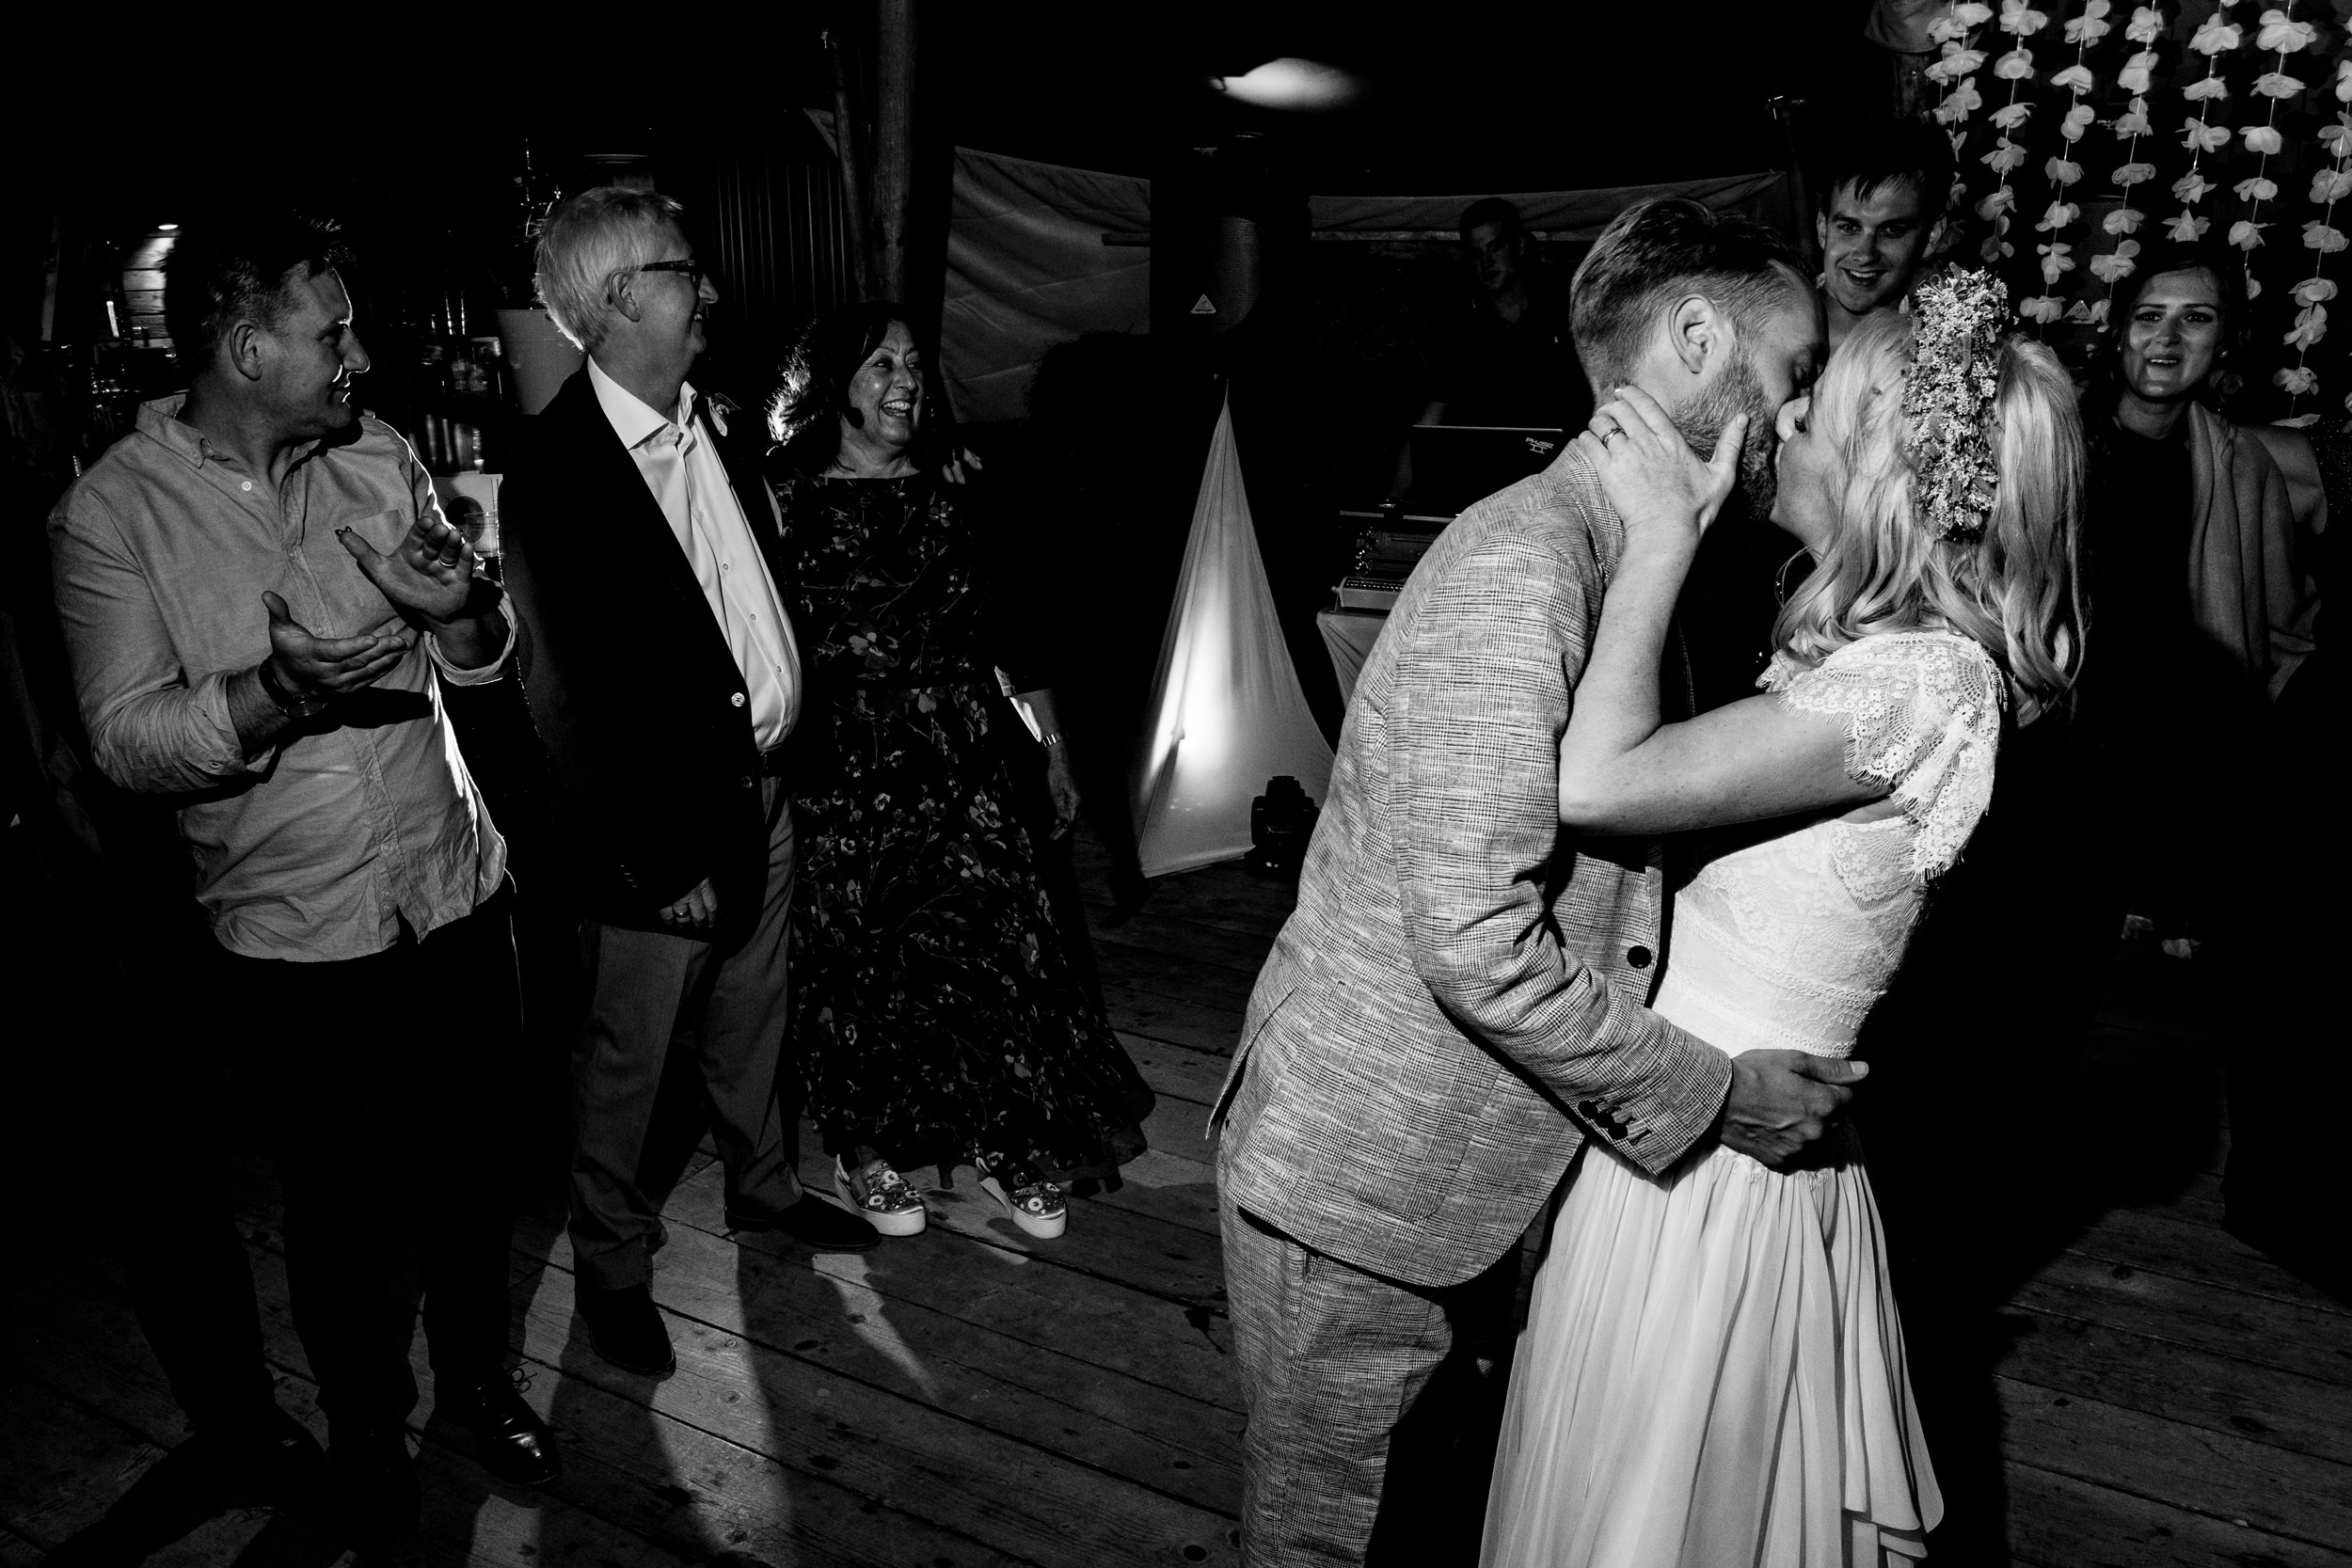 bride and groom kiss on dancefloor. maybush wedding co wedding photography by emma and rich.